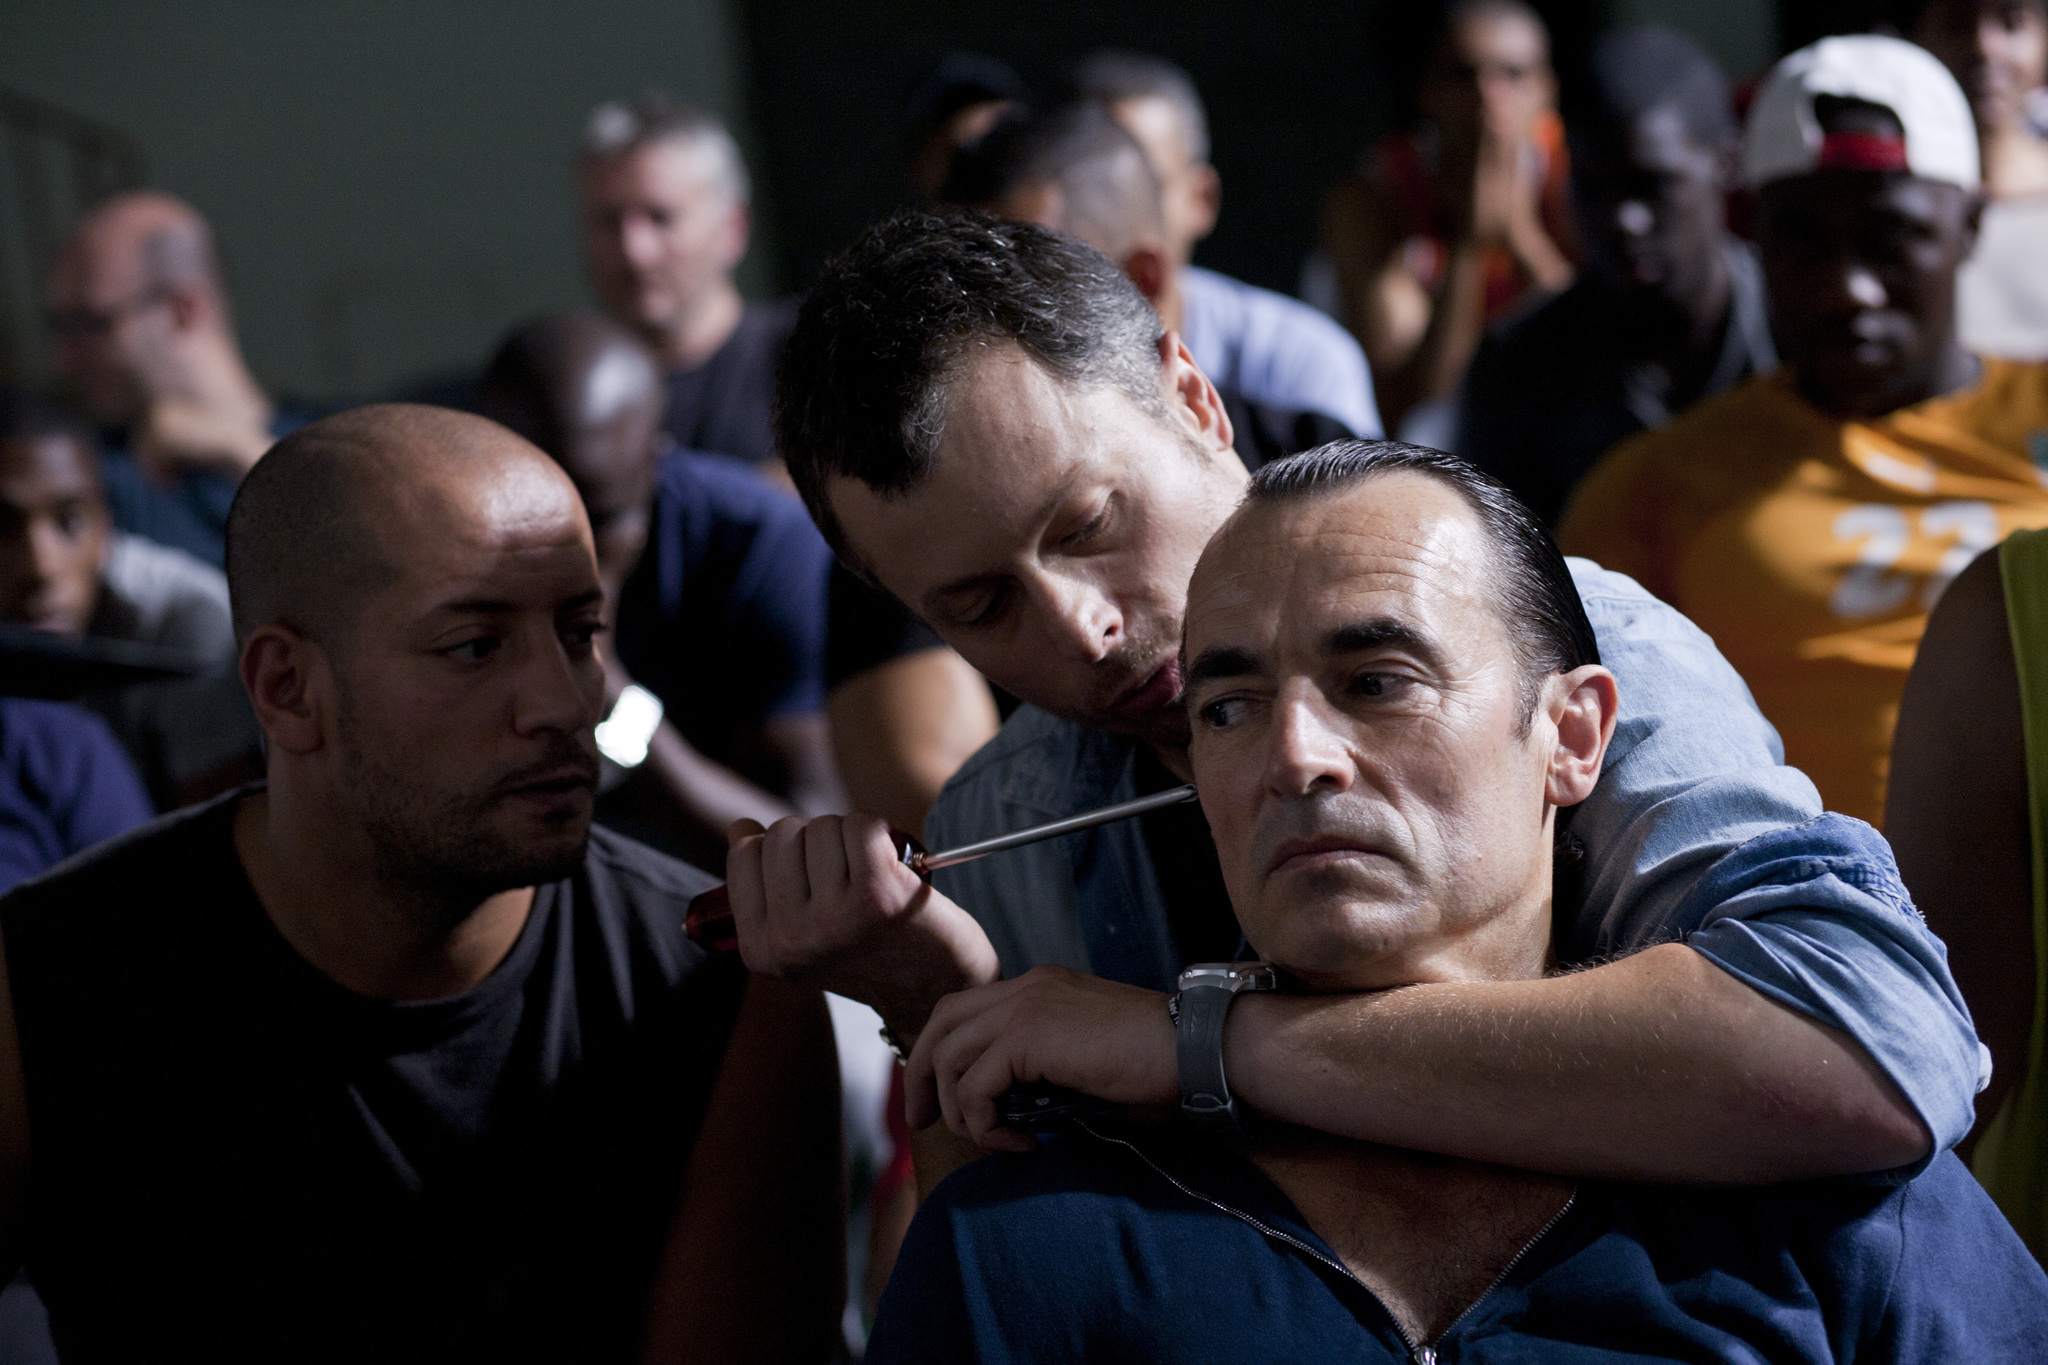 Albert Dupontel and Olivier Schneider in La proie (2011)